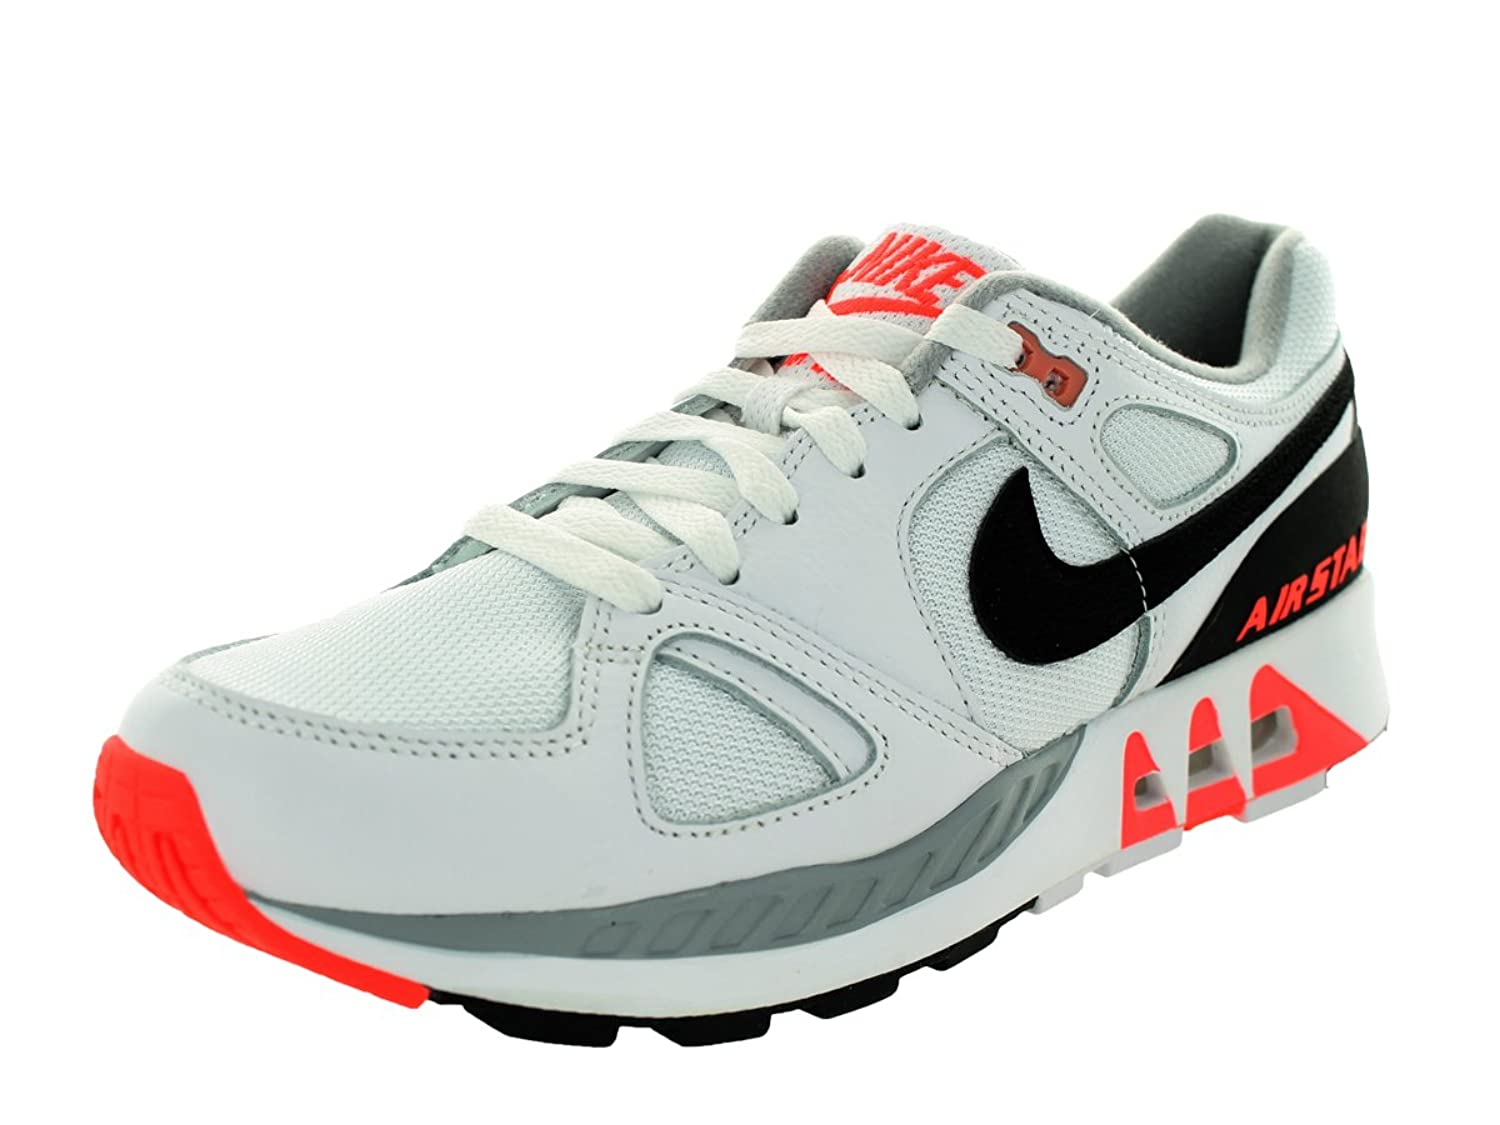 reputable site 9374a c9b10 Nike Air Stab Mens Running Shoes